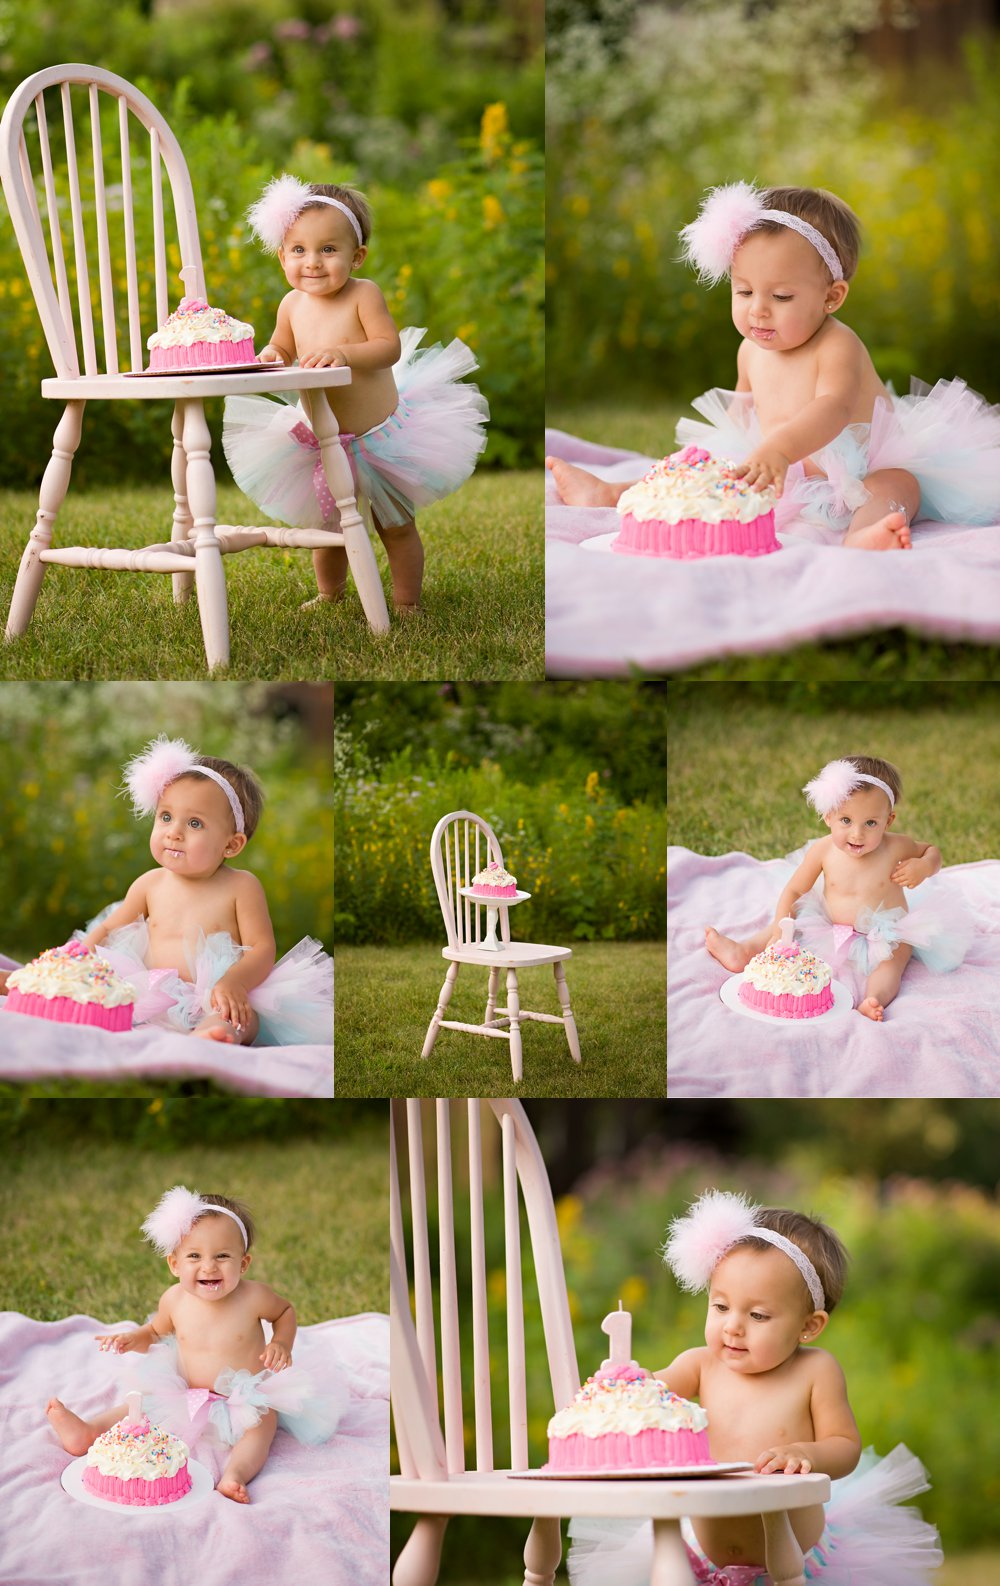 One year cake smash in Rockford IL at Midway Village, Pink tutu one year milestone session